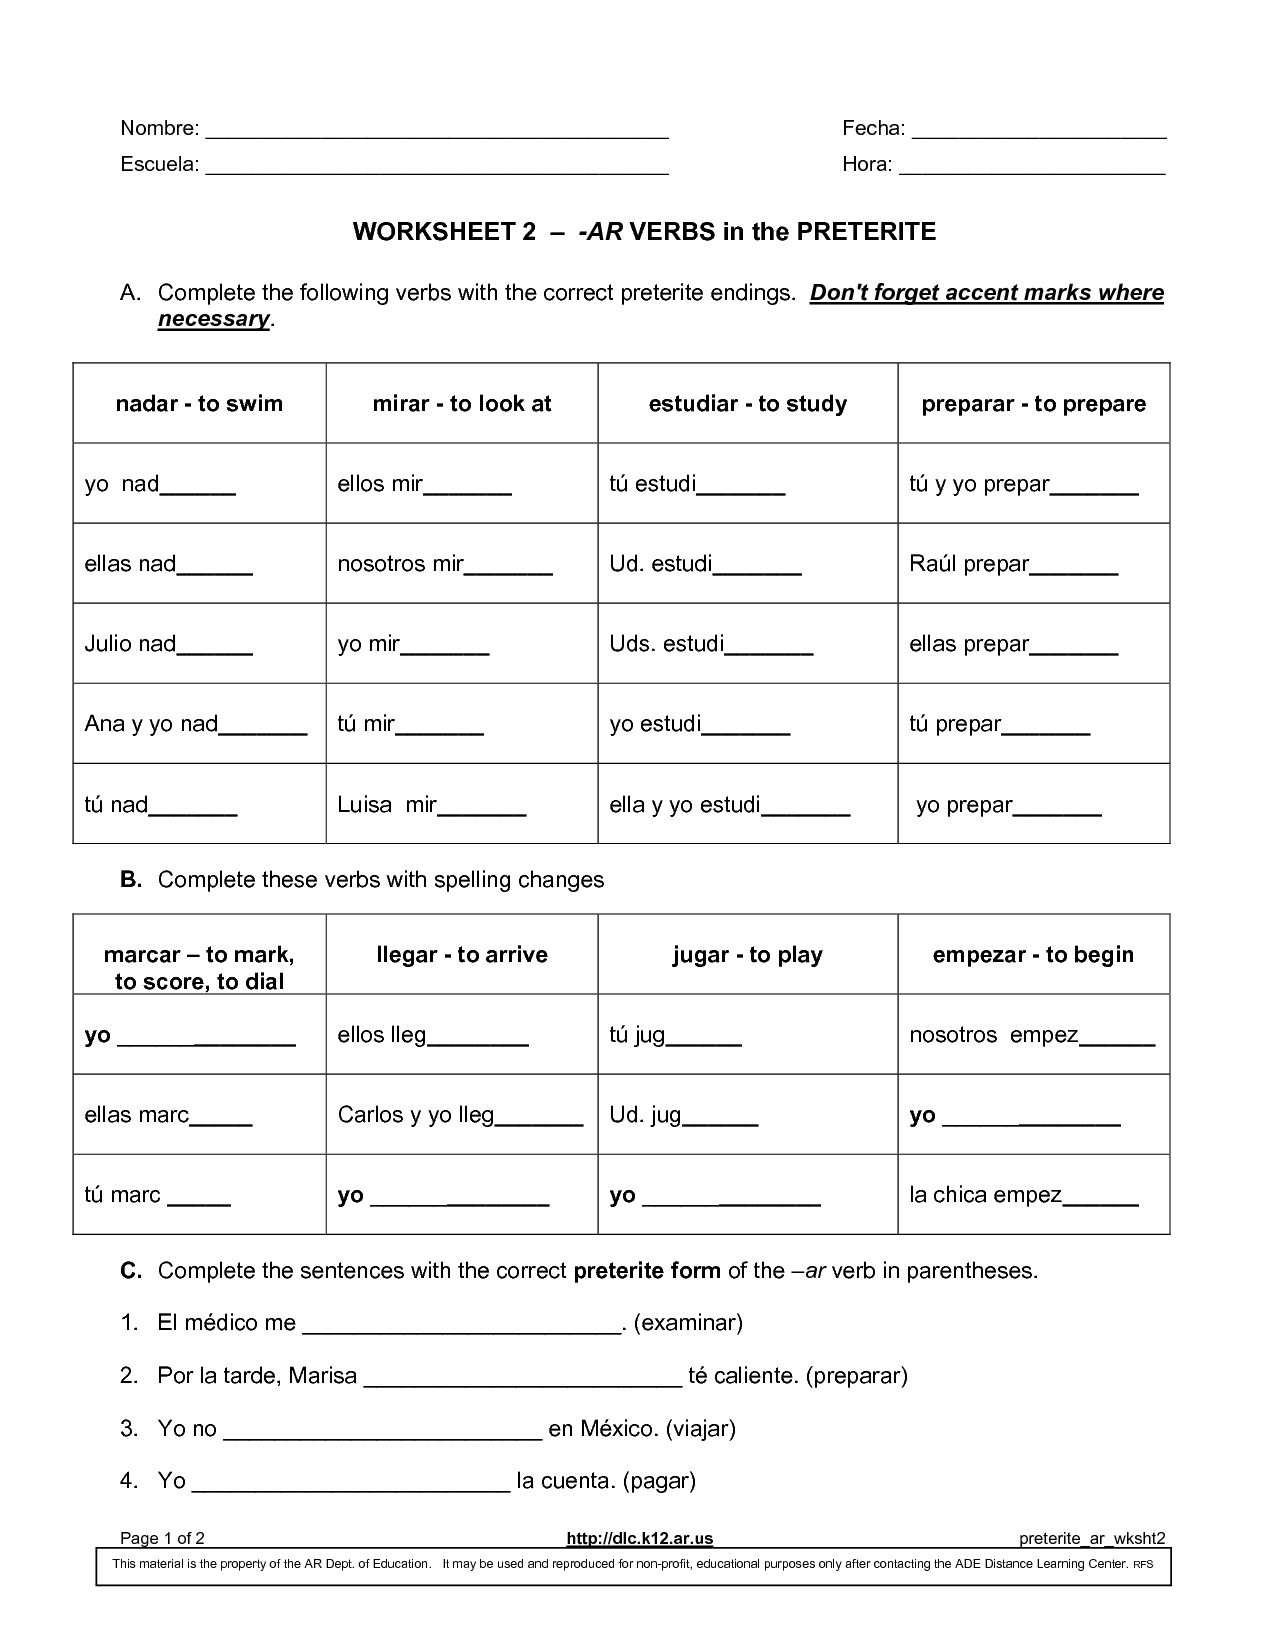 Worksheet 2 Ar Verbs In The Preterite Answers